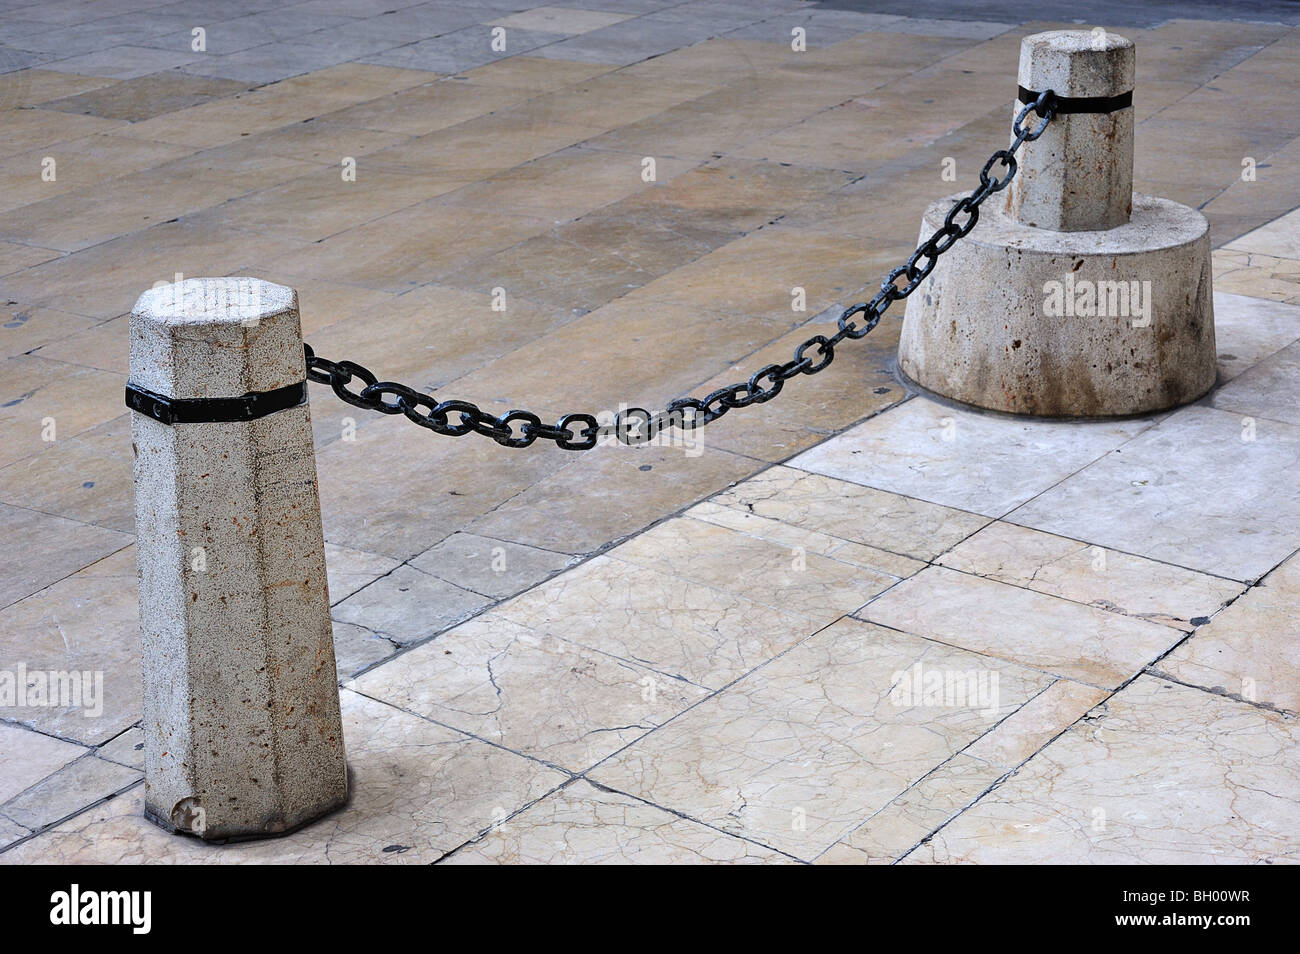 chain and stone bollards to prevent vehicle passage Stock Photo